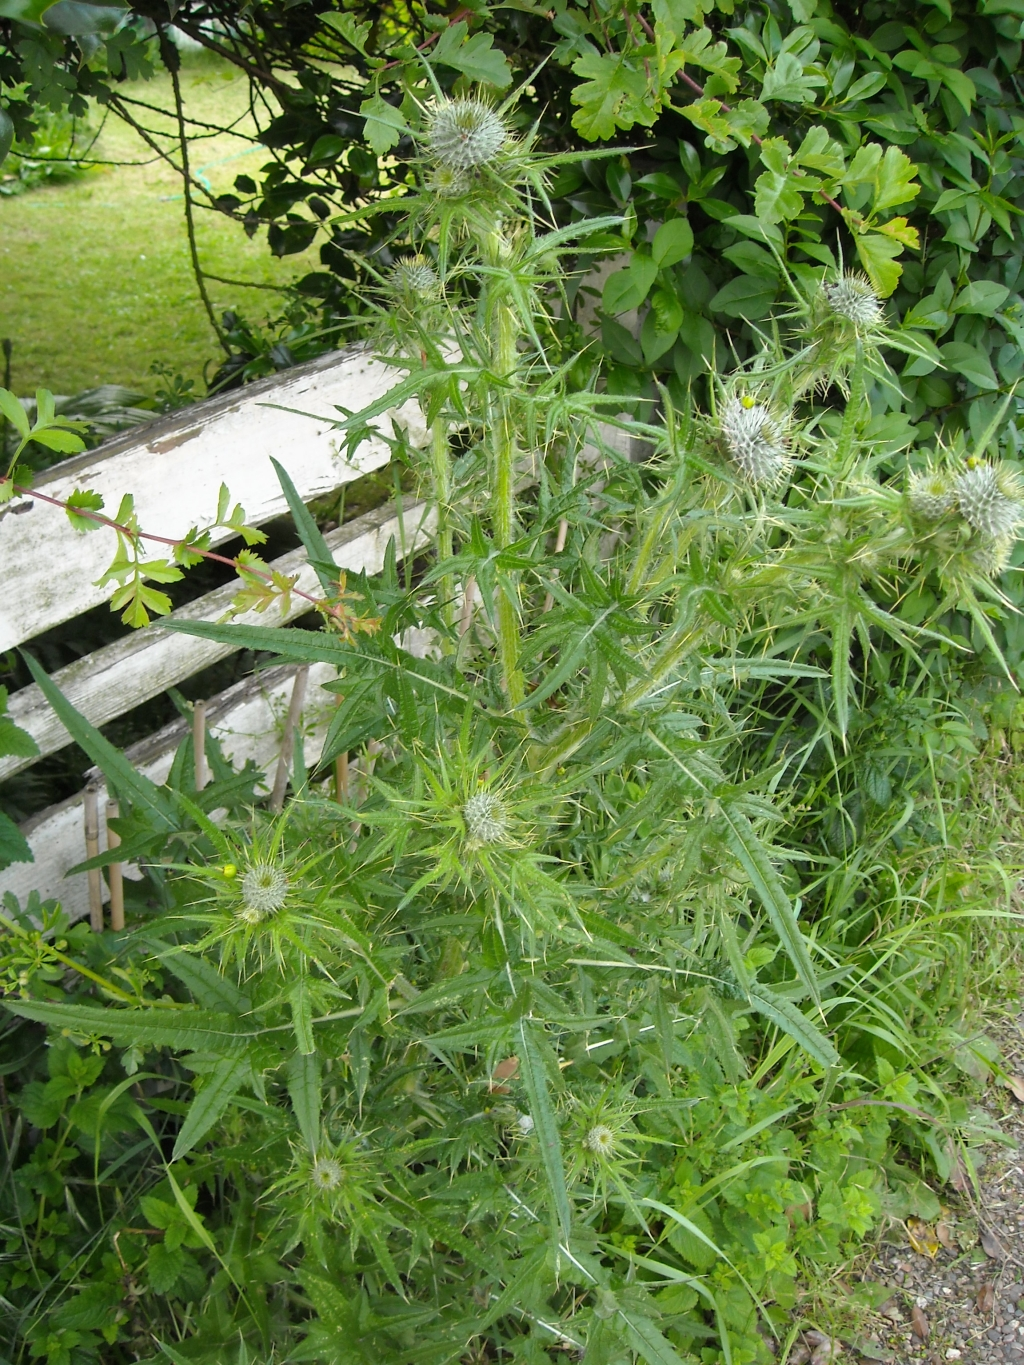 Bull Thistle, Common Thistle, or Spear Thistle